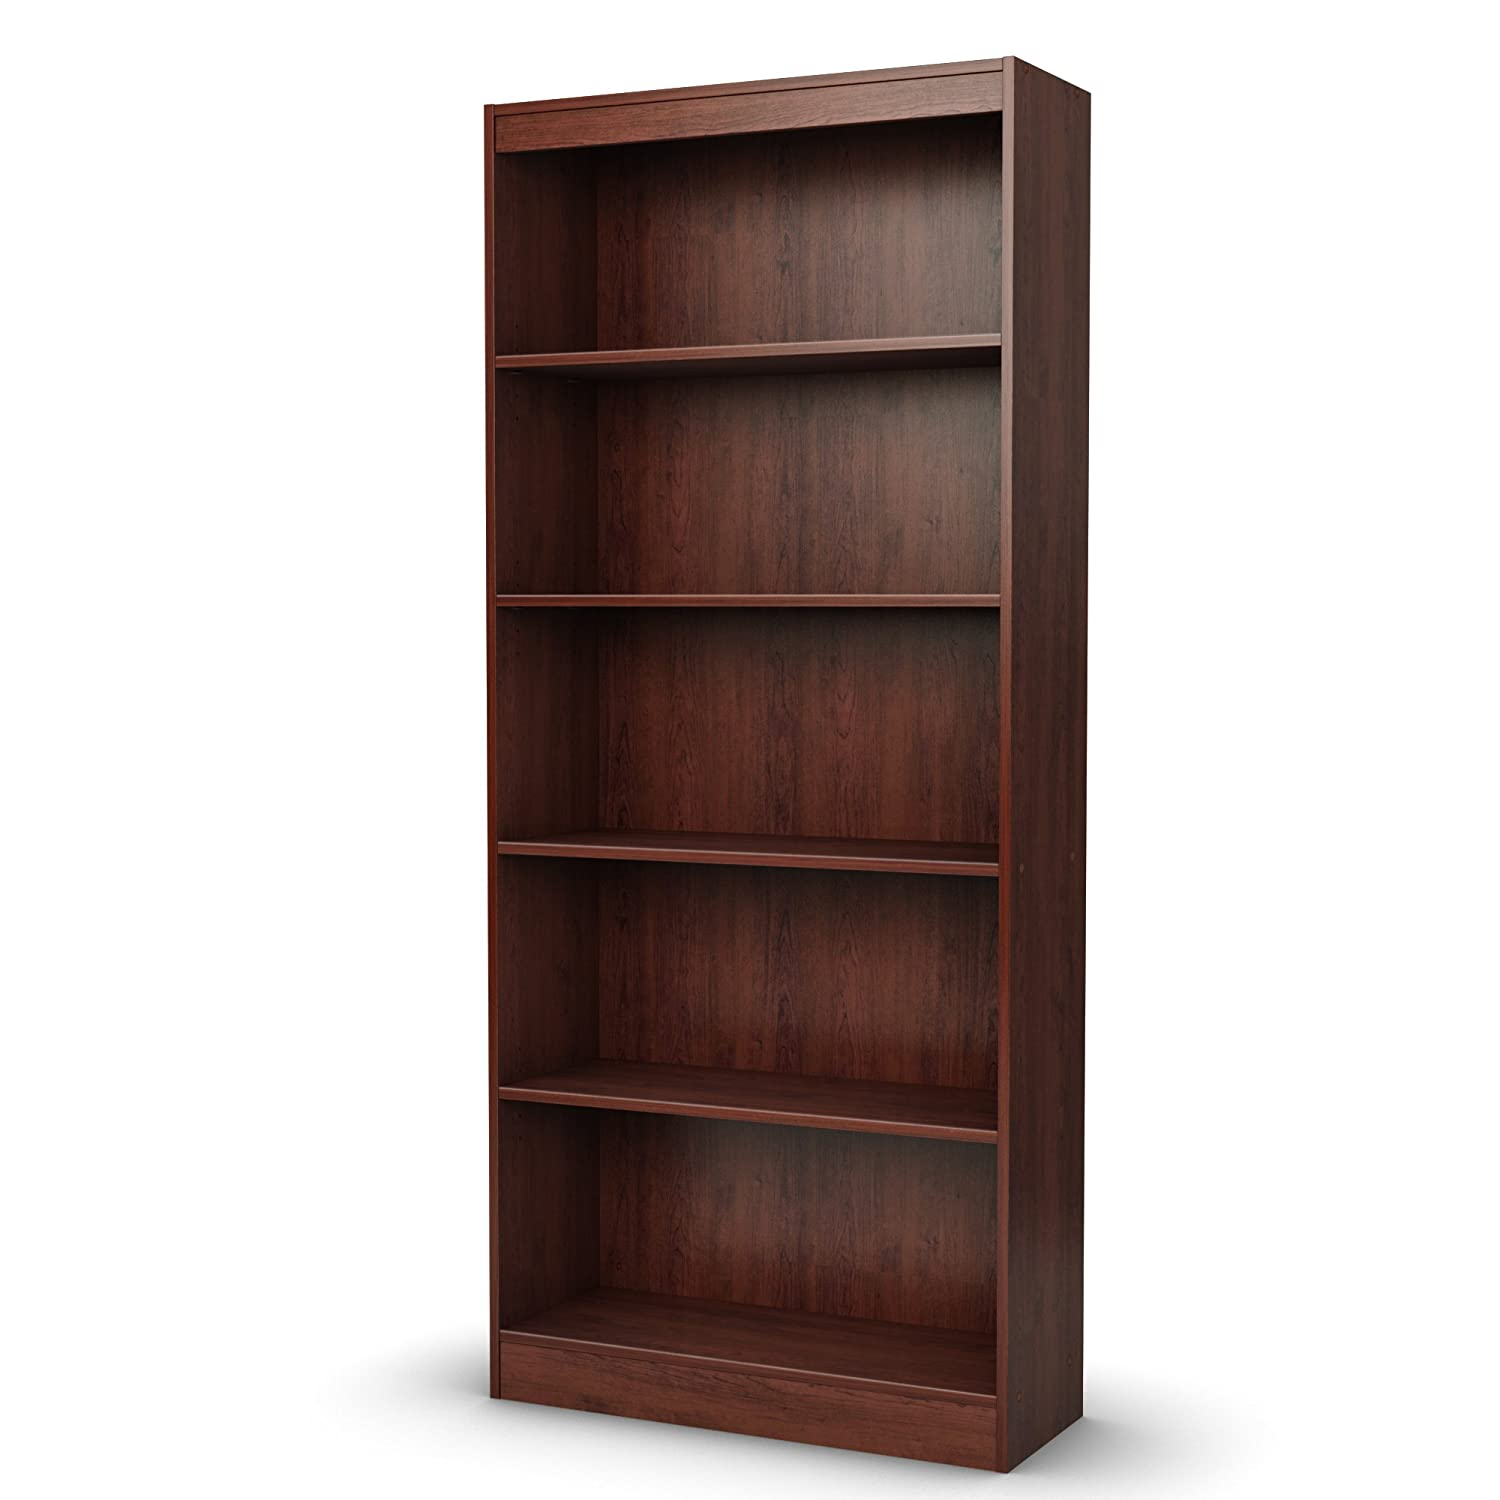 mahogany ip bookcase divider walmart room bookcases homes park and depot better com veneer preston gardens office